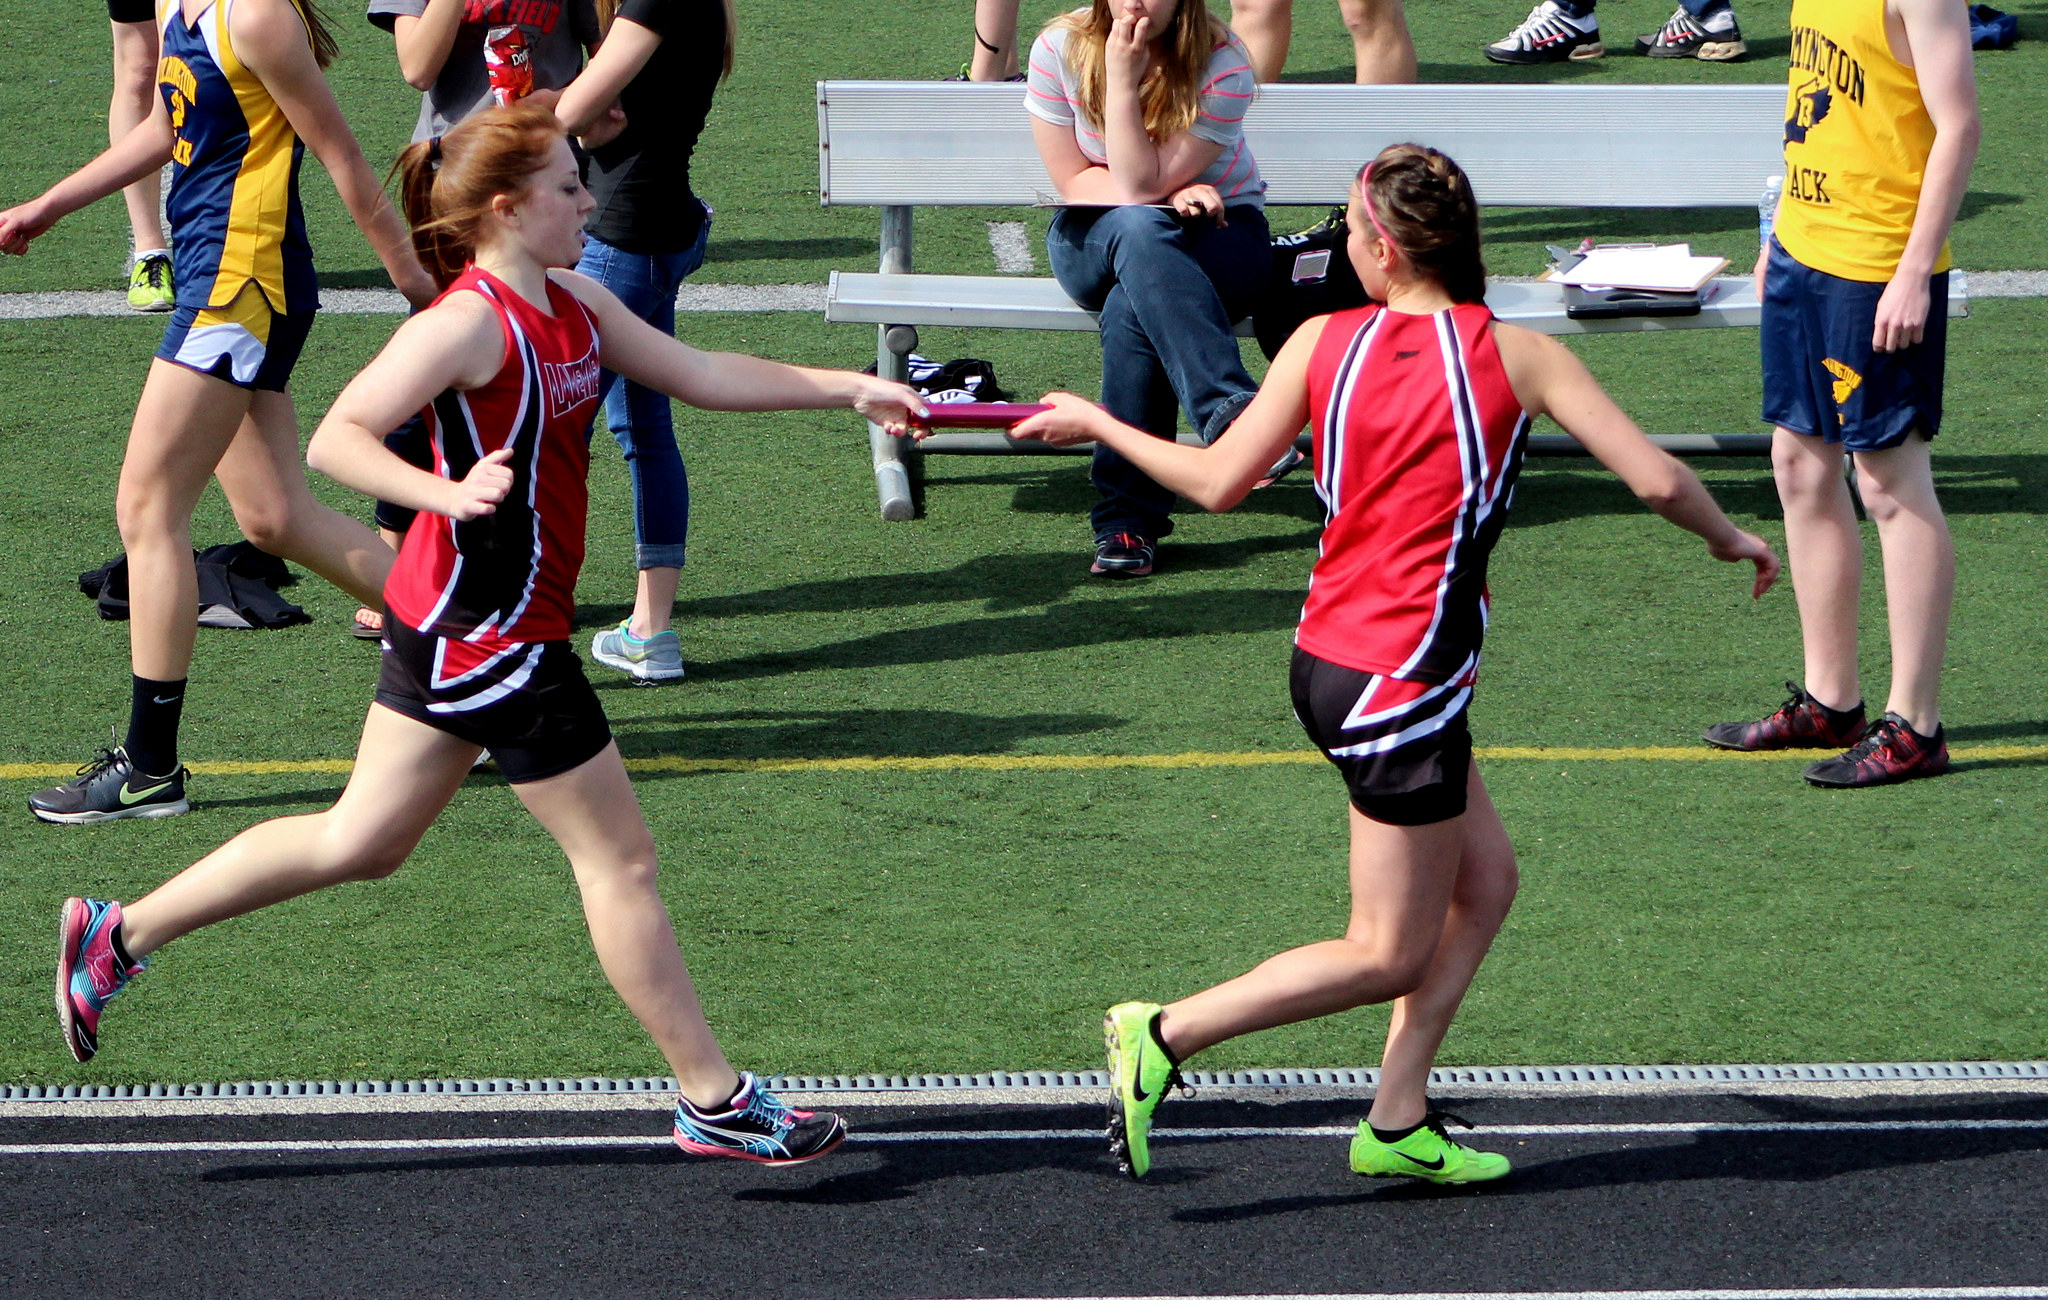 runners in black and red uniforms passing baton